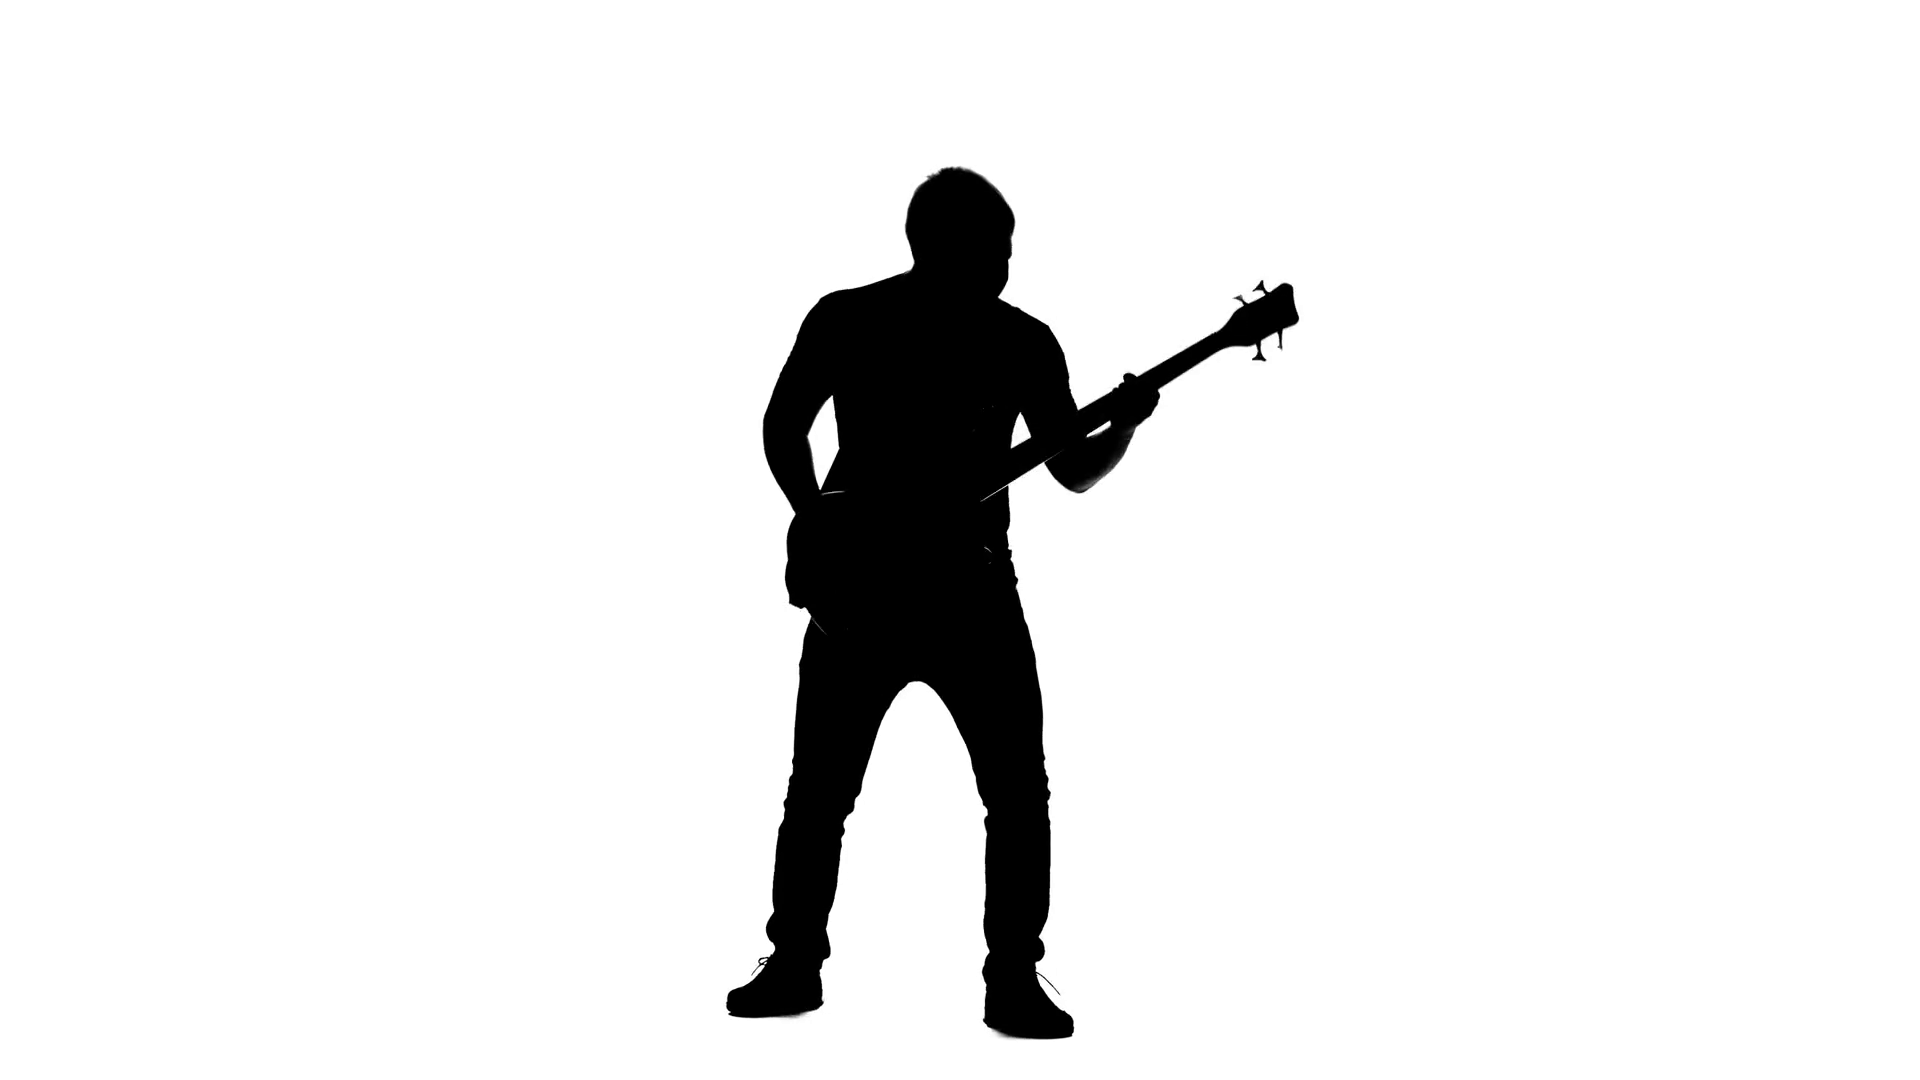 1920x1080 Silhouette Bass Guitarist Playing On Her Knees. Alpha Channel